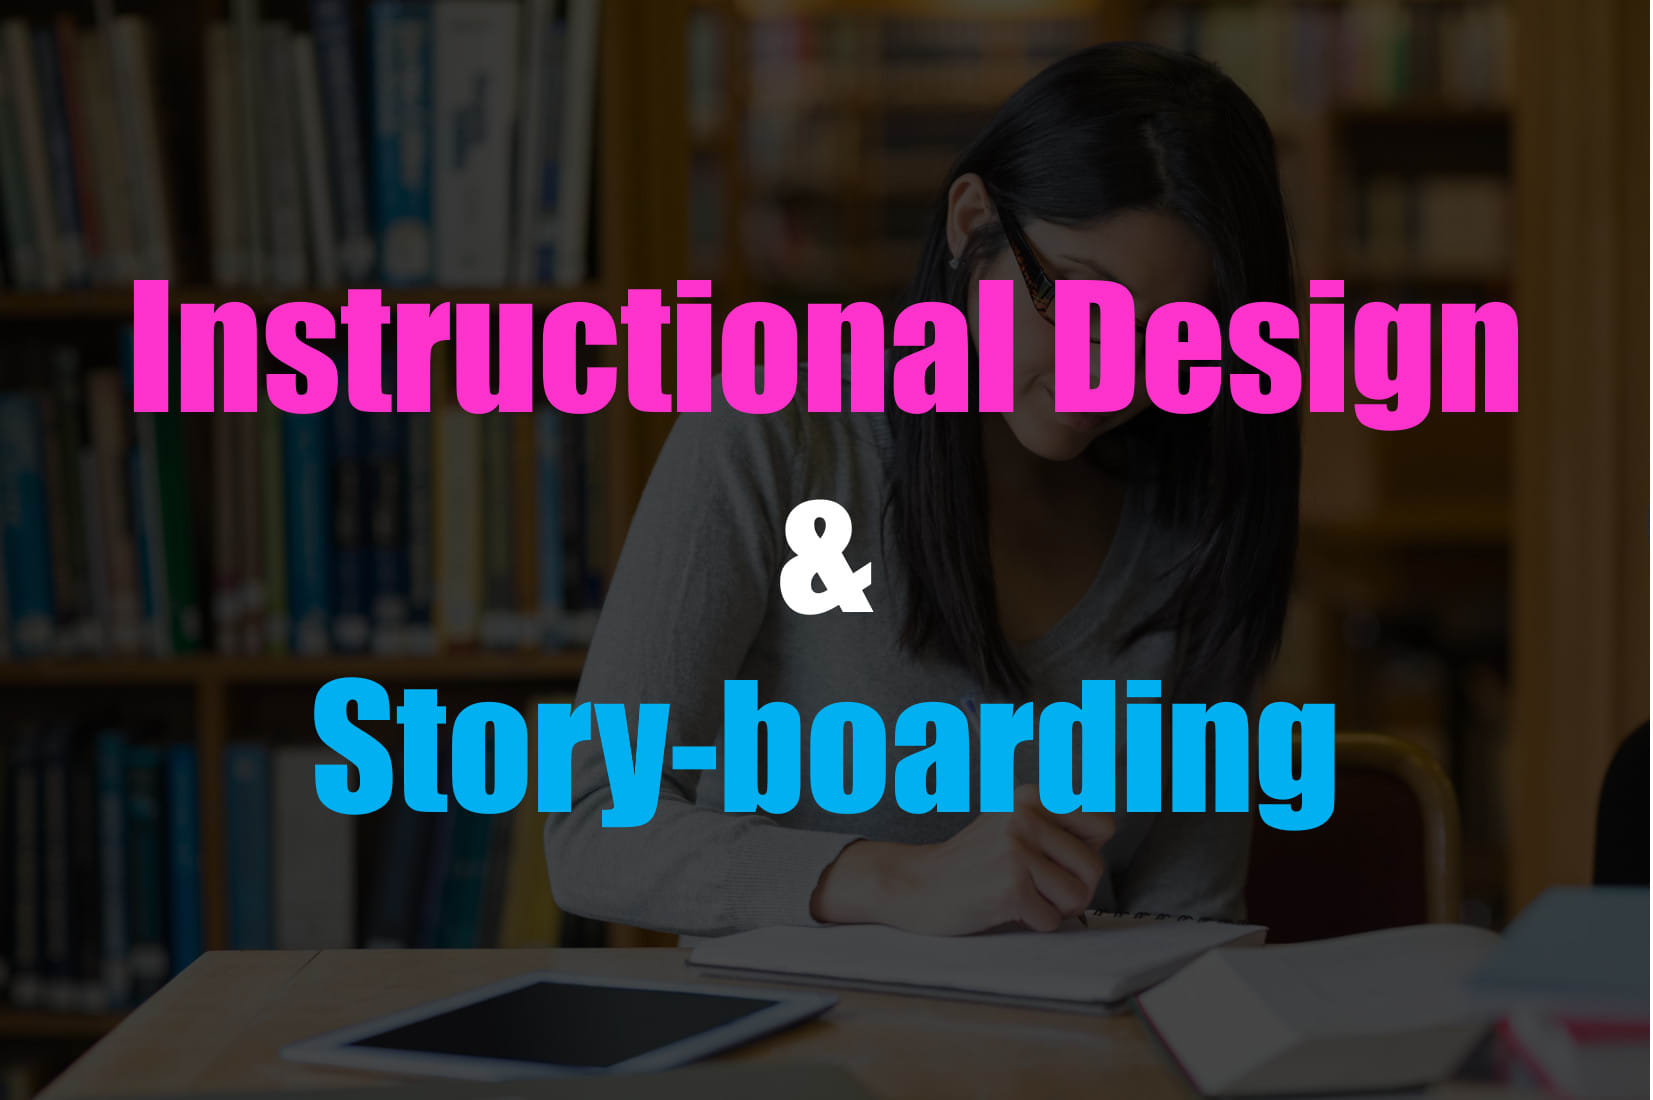 Storyboard Instructional Design Your Content For Elearning Classroom Training By Amitytraining